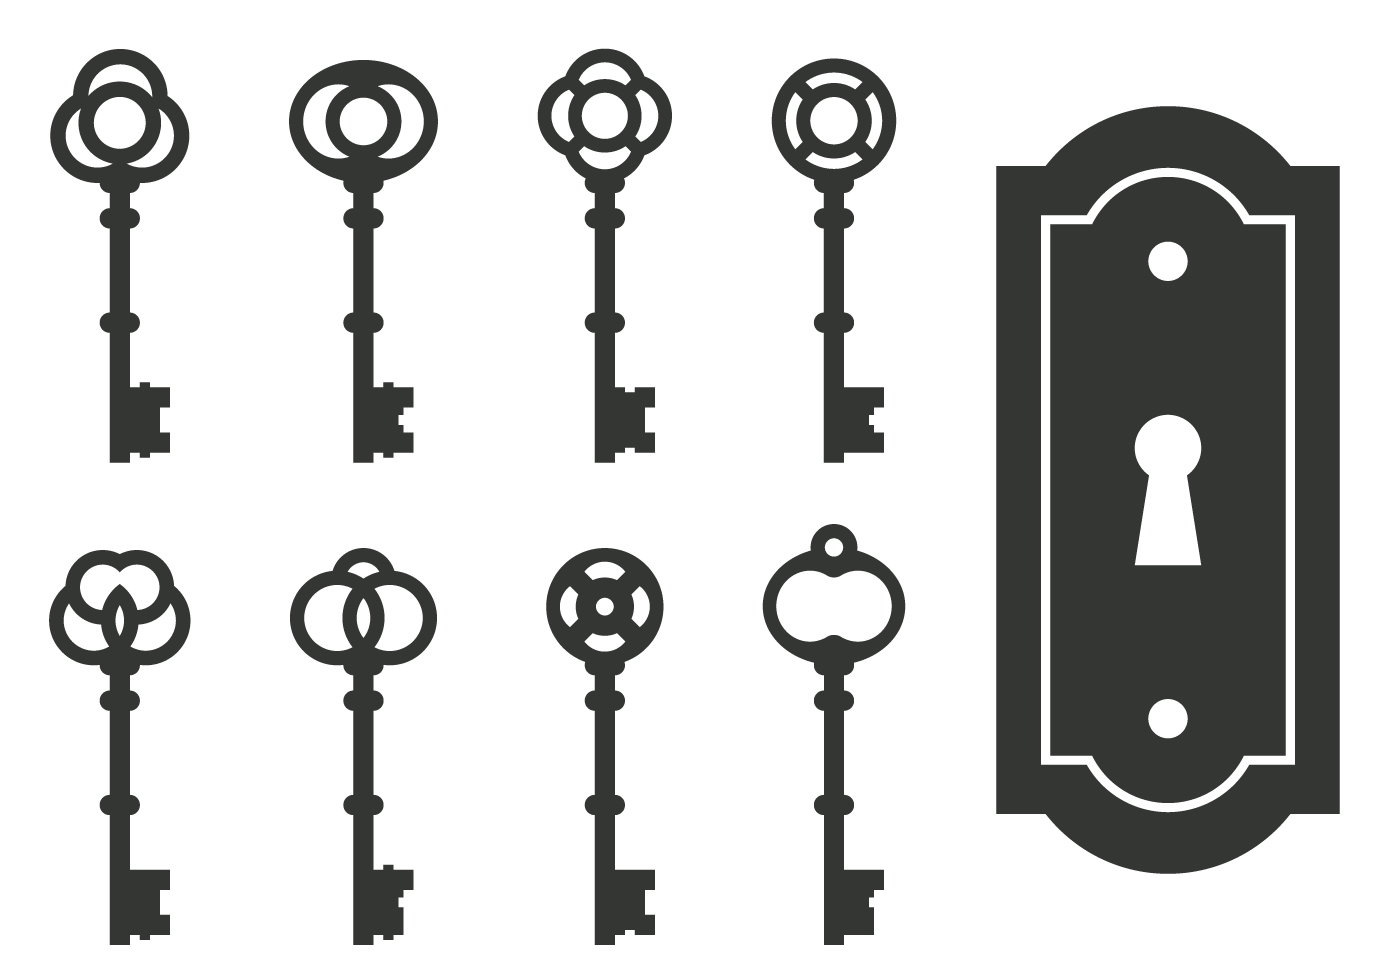 skeleton key clipart free vector - photo #23